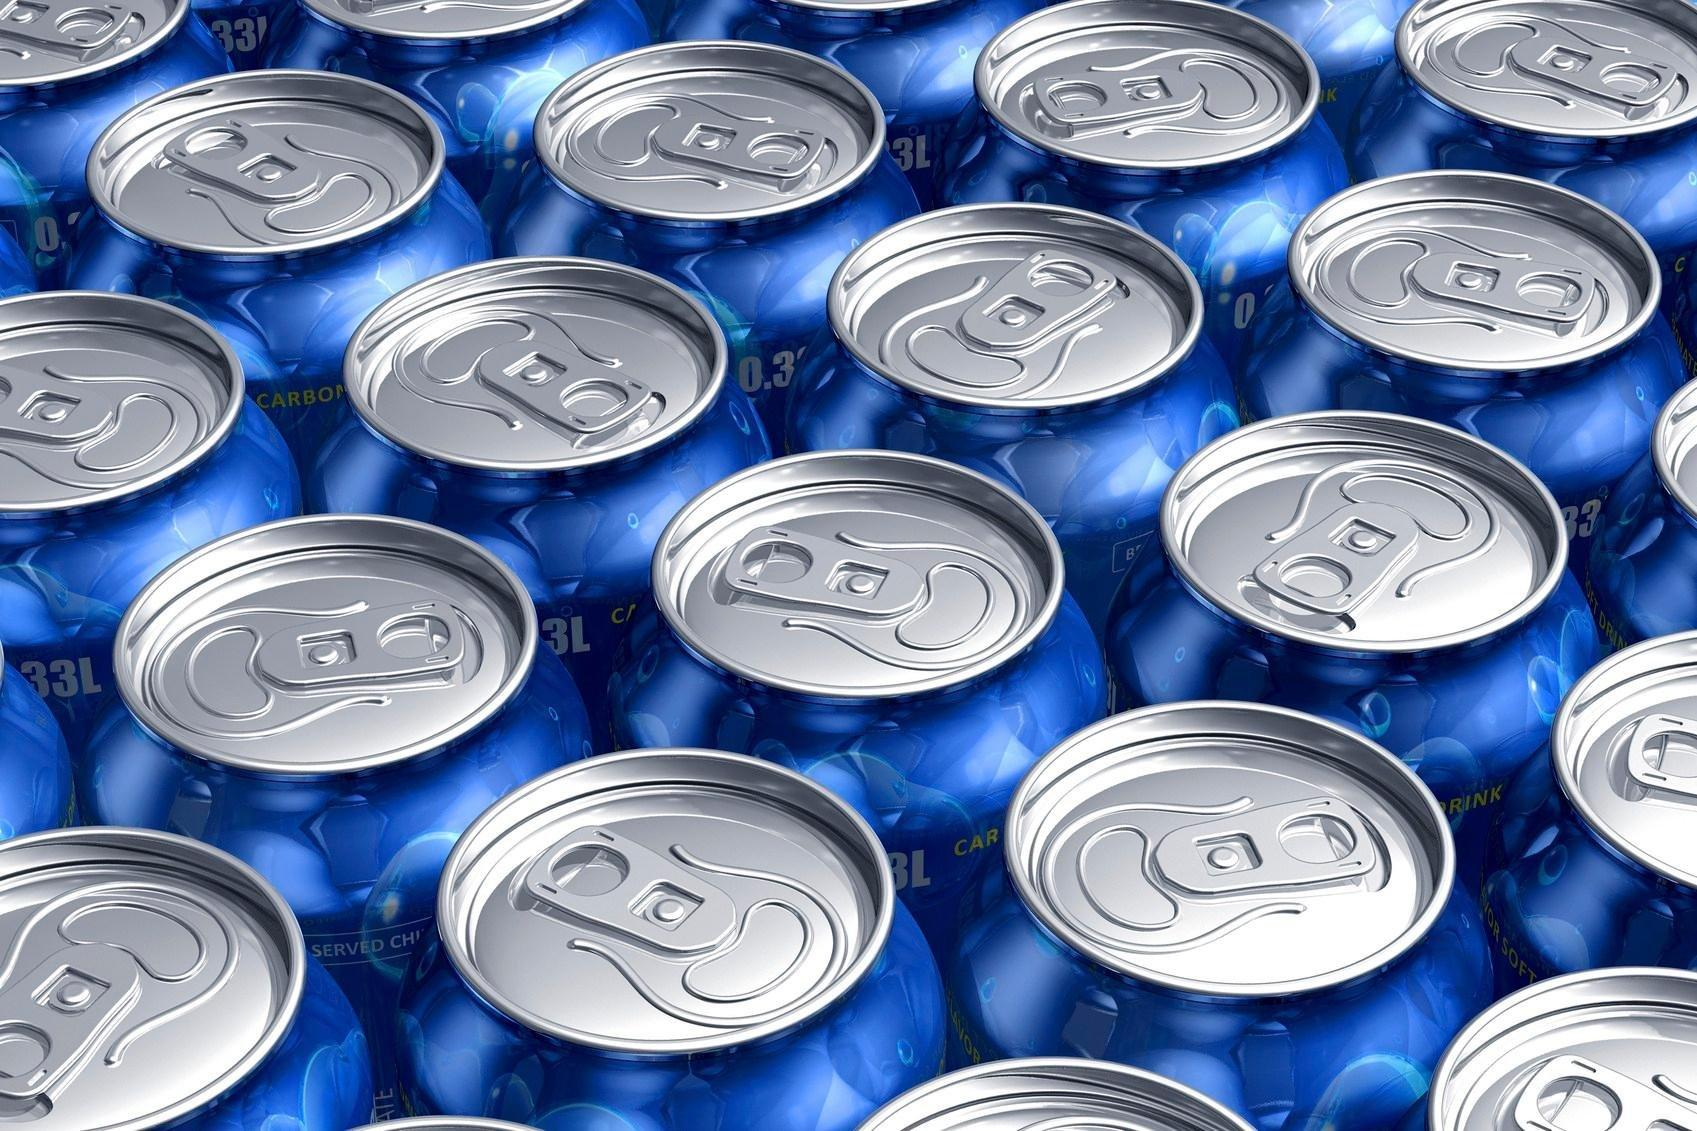 One Soda A Day Increases Diabetes Risk